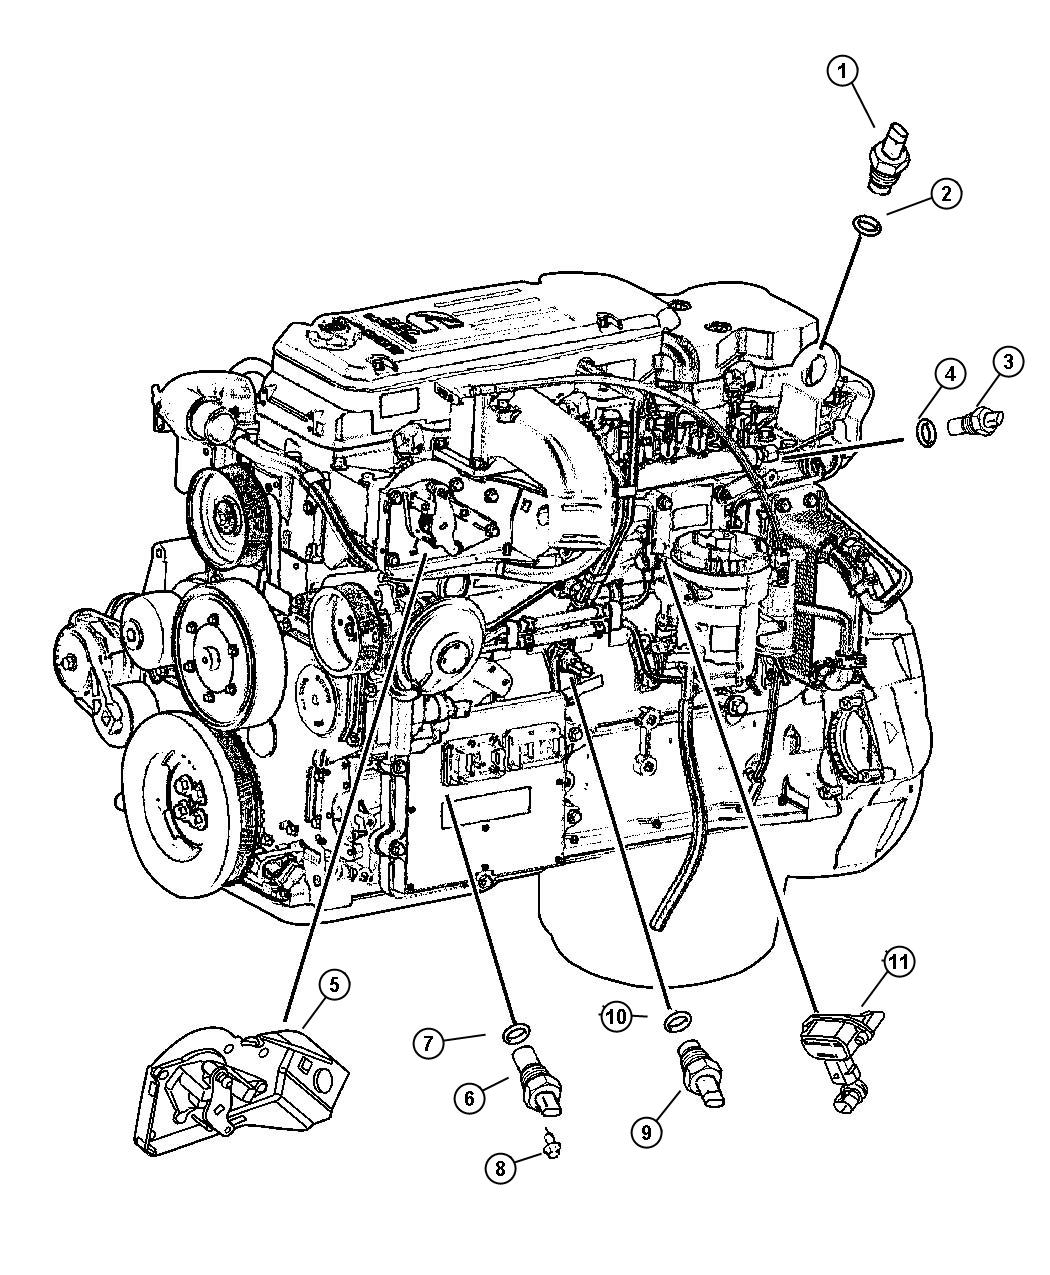 hight resolution of dodge 5 9 engine diagram get free image about wiring diagram